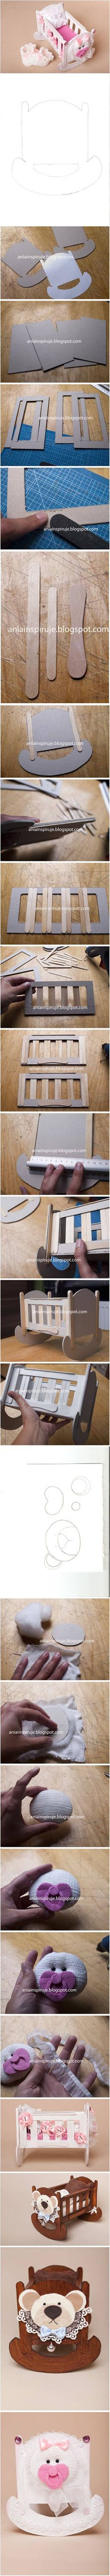 DIY Cardboard Baby Cradle... Oh my gosh!! This is just too cute!! Hmmm... I think I could see this as a table centerpiece for a baby shower??? Filled with goodies perhaps??? Oh man! Someone have a baby!! Lol!